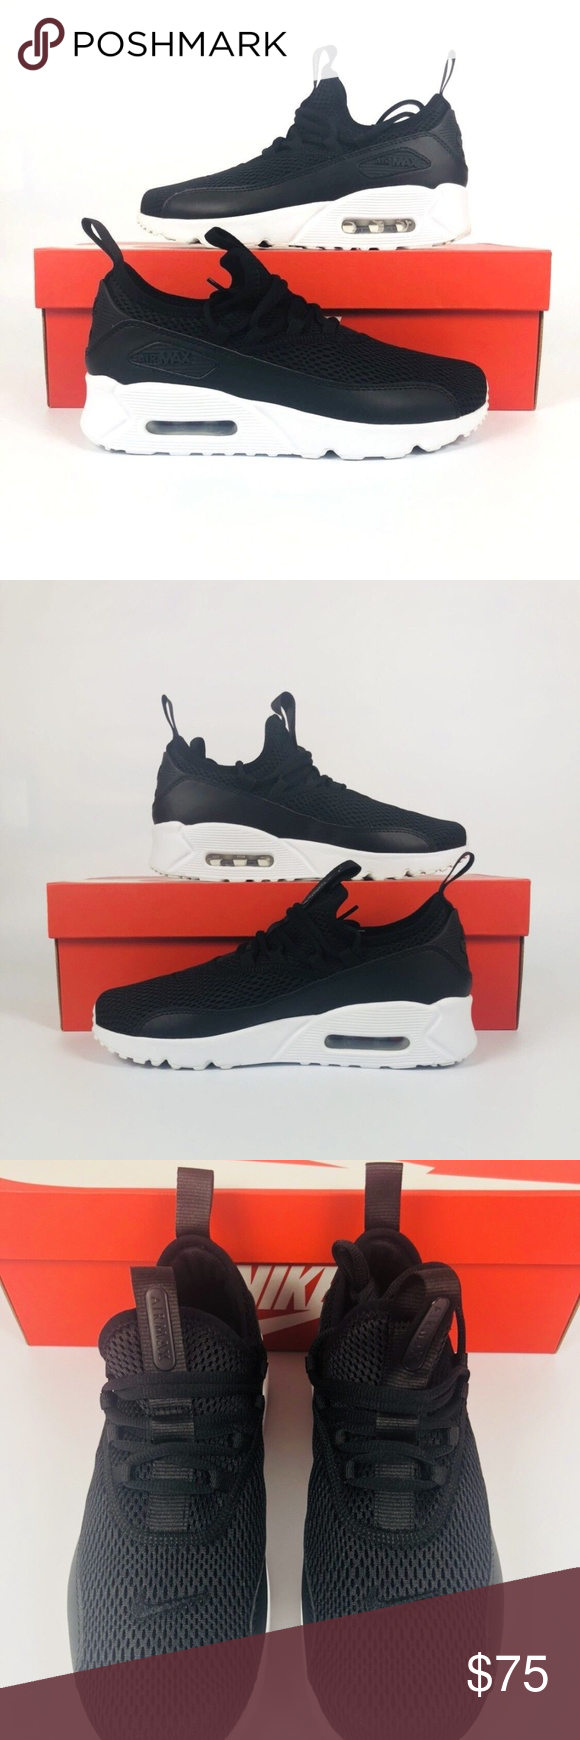 64f4c92530 Nike Air Max 90 EZ GS Nike Air Max 90 EZ GS Black White Kids Youth Running Shoes  AH5211-005 New With Box Nike Shoes Sneakers